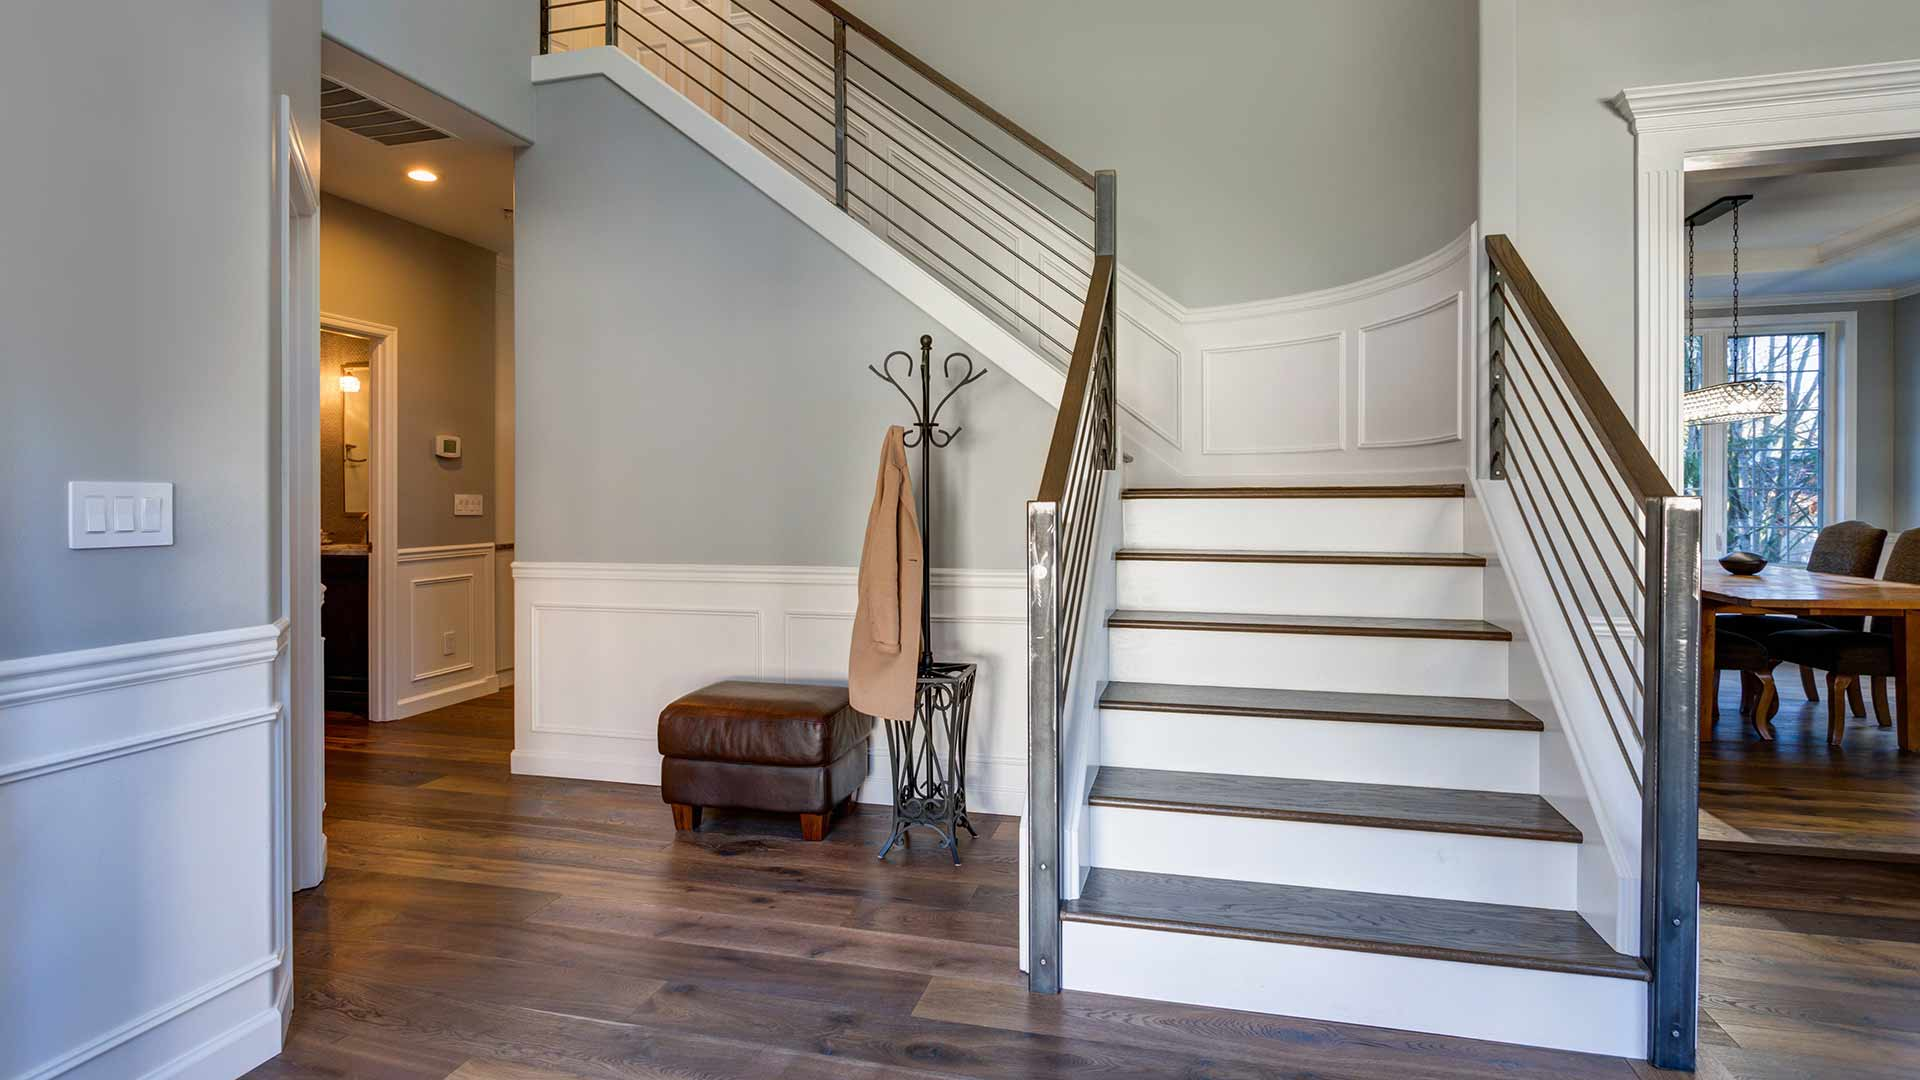 Foyer with stairs leading to the second floor, wainscoting and ambient lighting